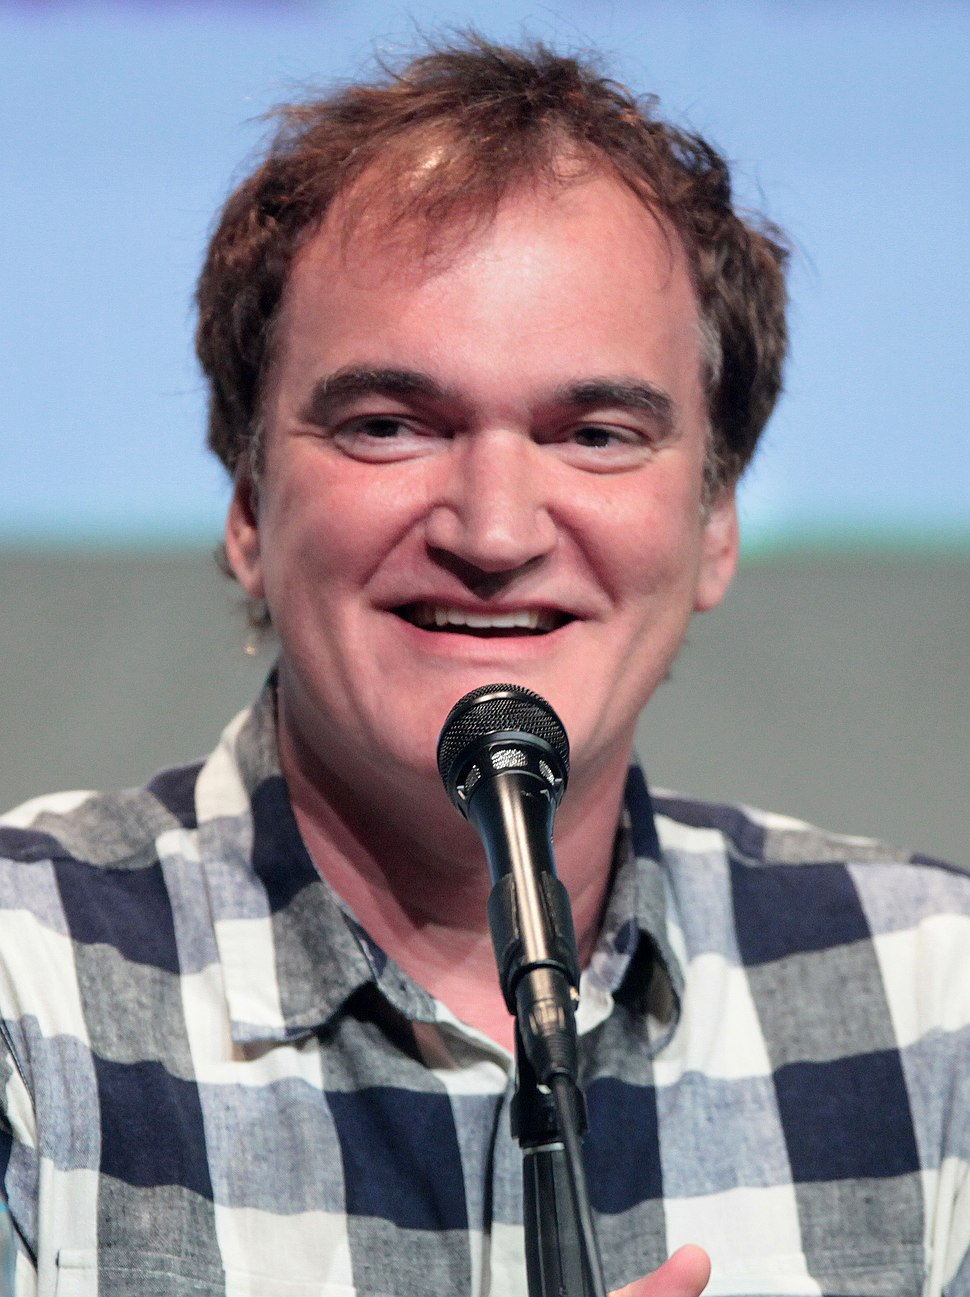 Quentin Tarantino by Gage Skidmore